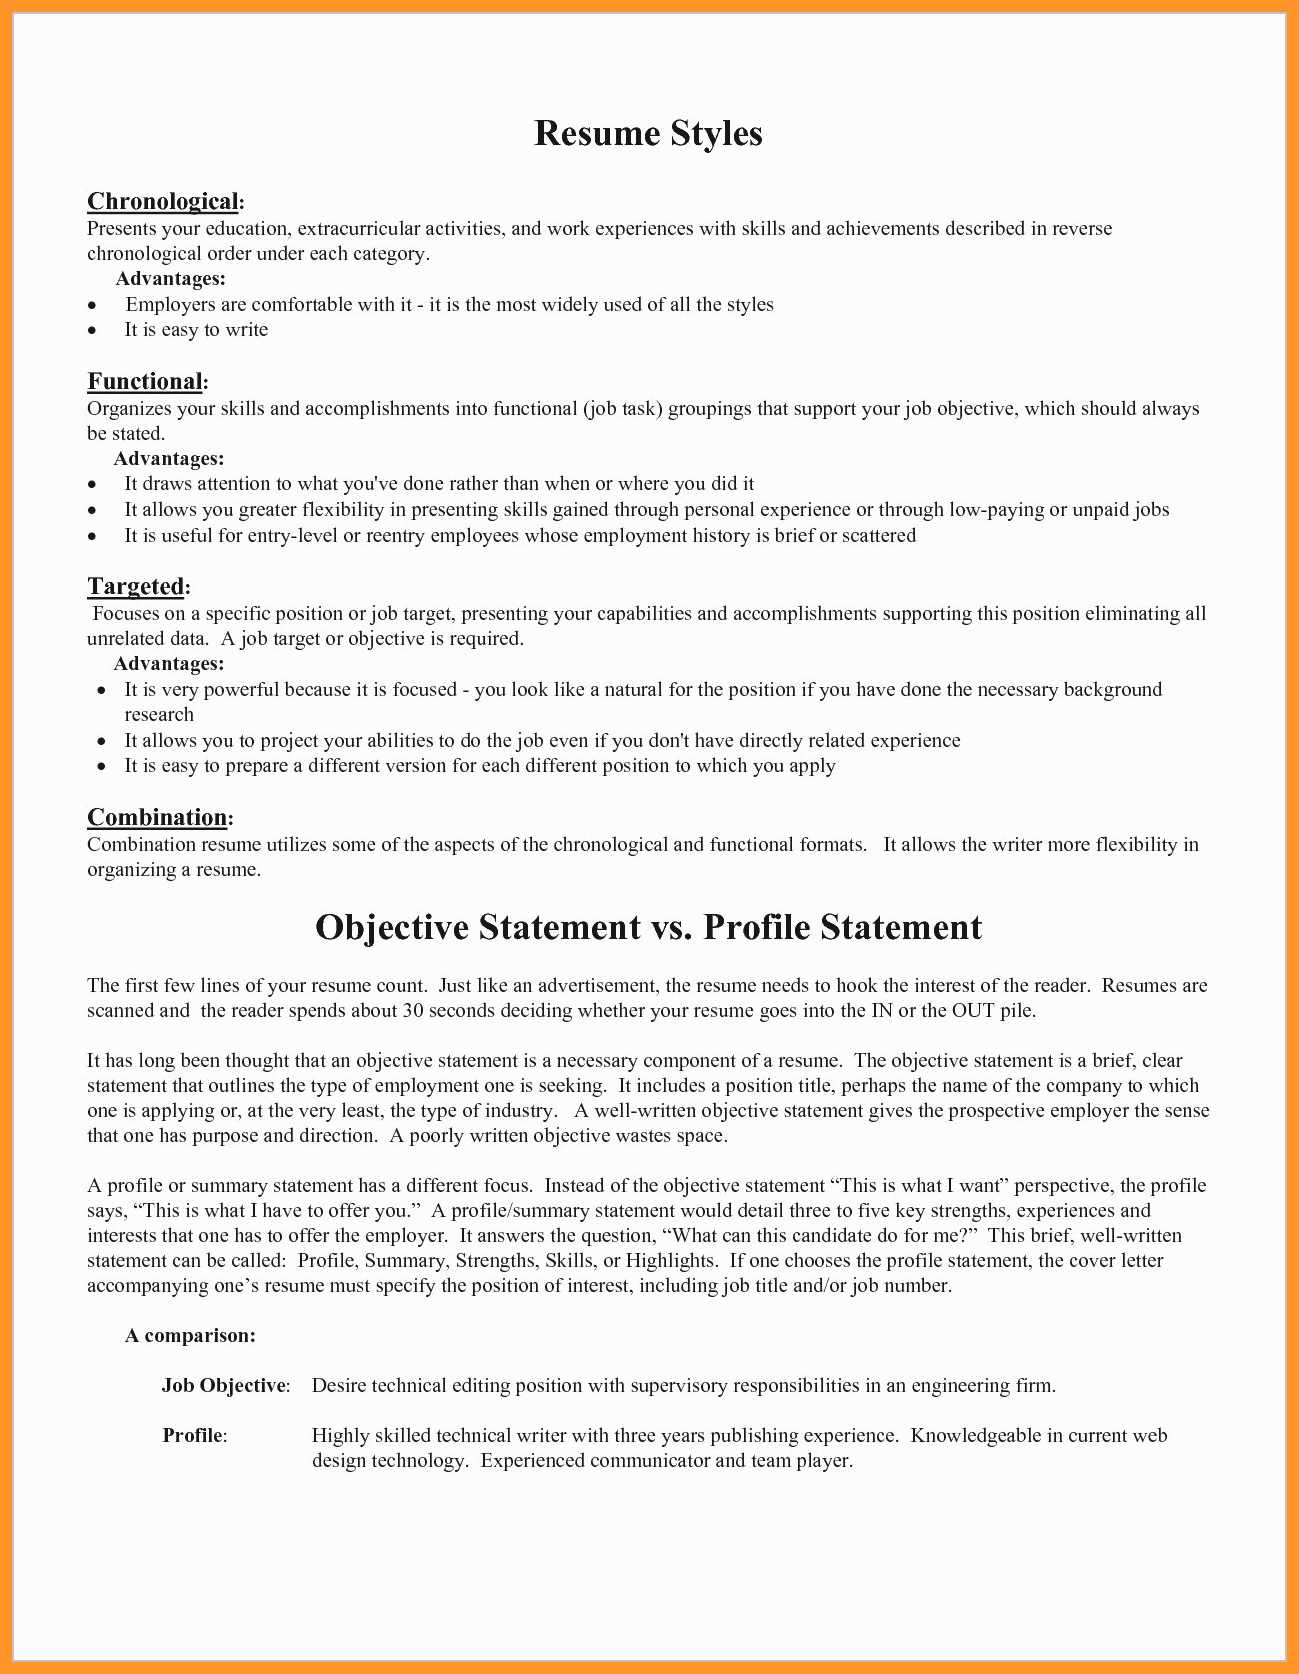 Resume Objective Statement Resume Objectives For It Jobs Objective For Job Resume Example Unique Resume Objective Statements Examples New Unique Examples Resumes Of Objective For Job Resume Example resume objective statement wikiresume.com